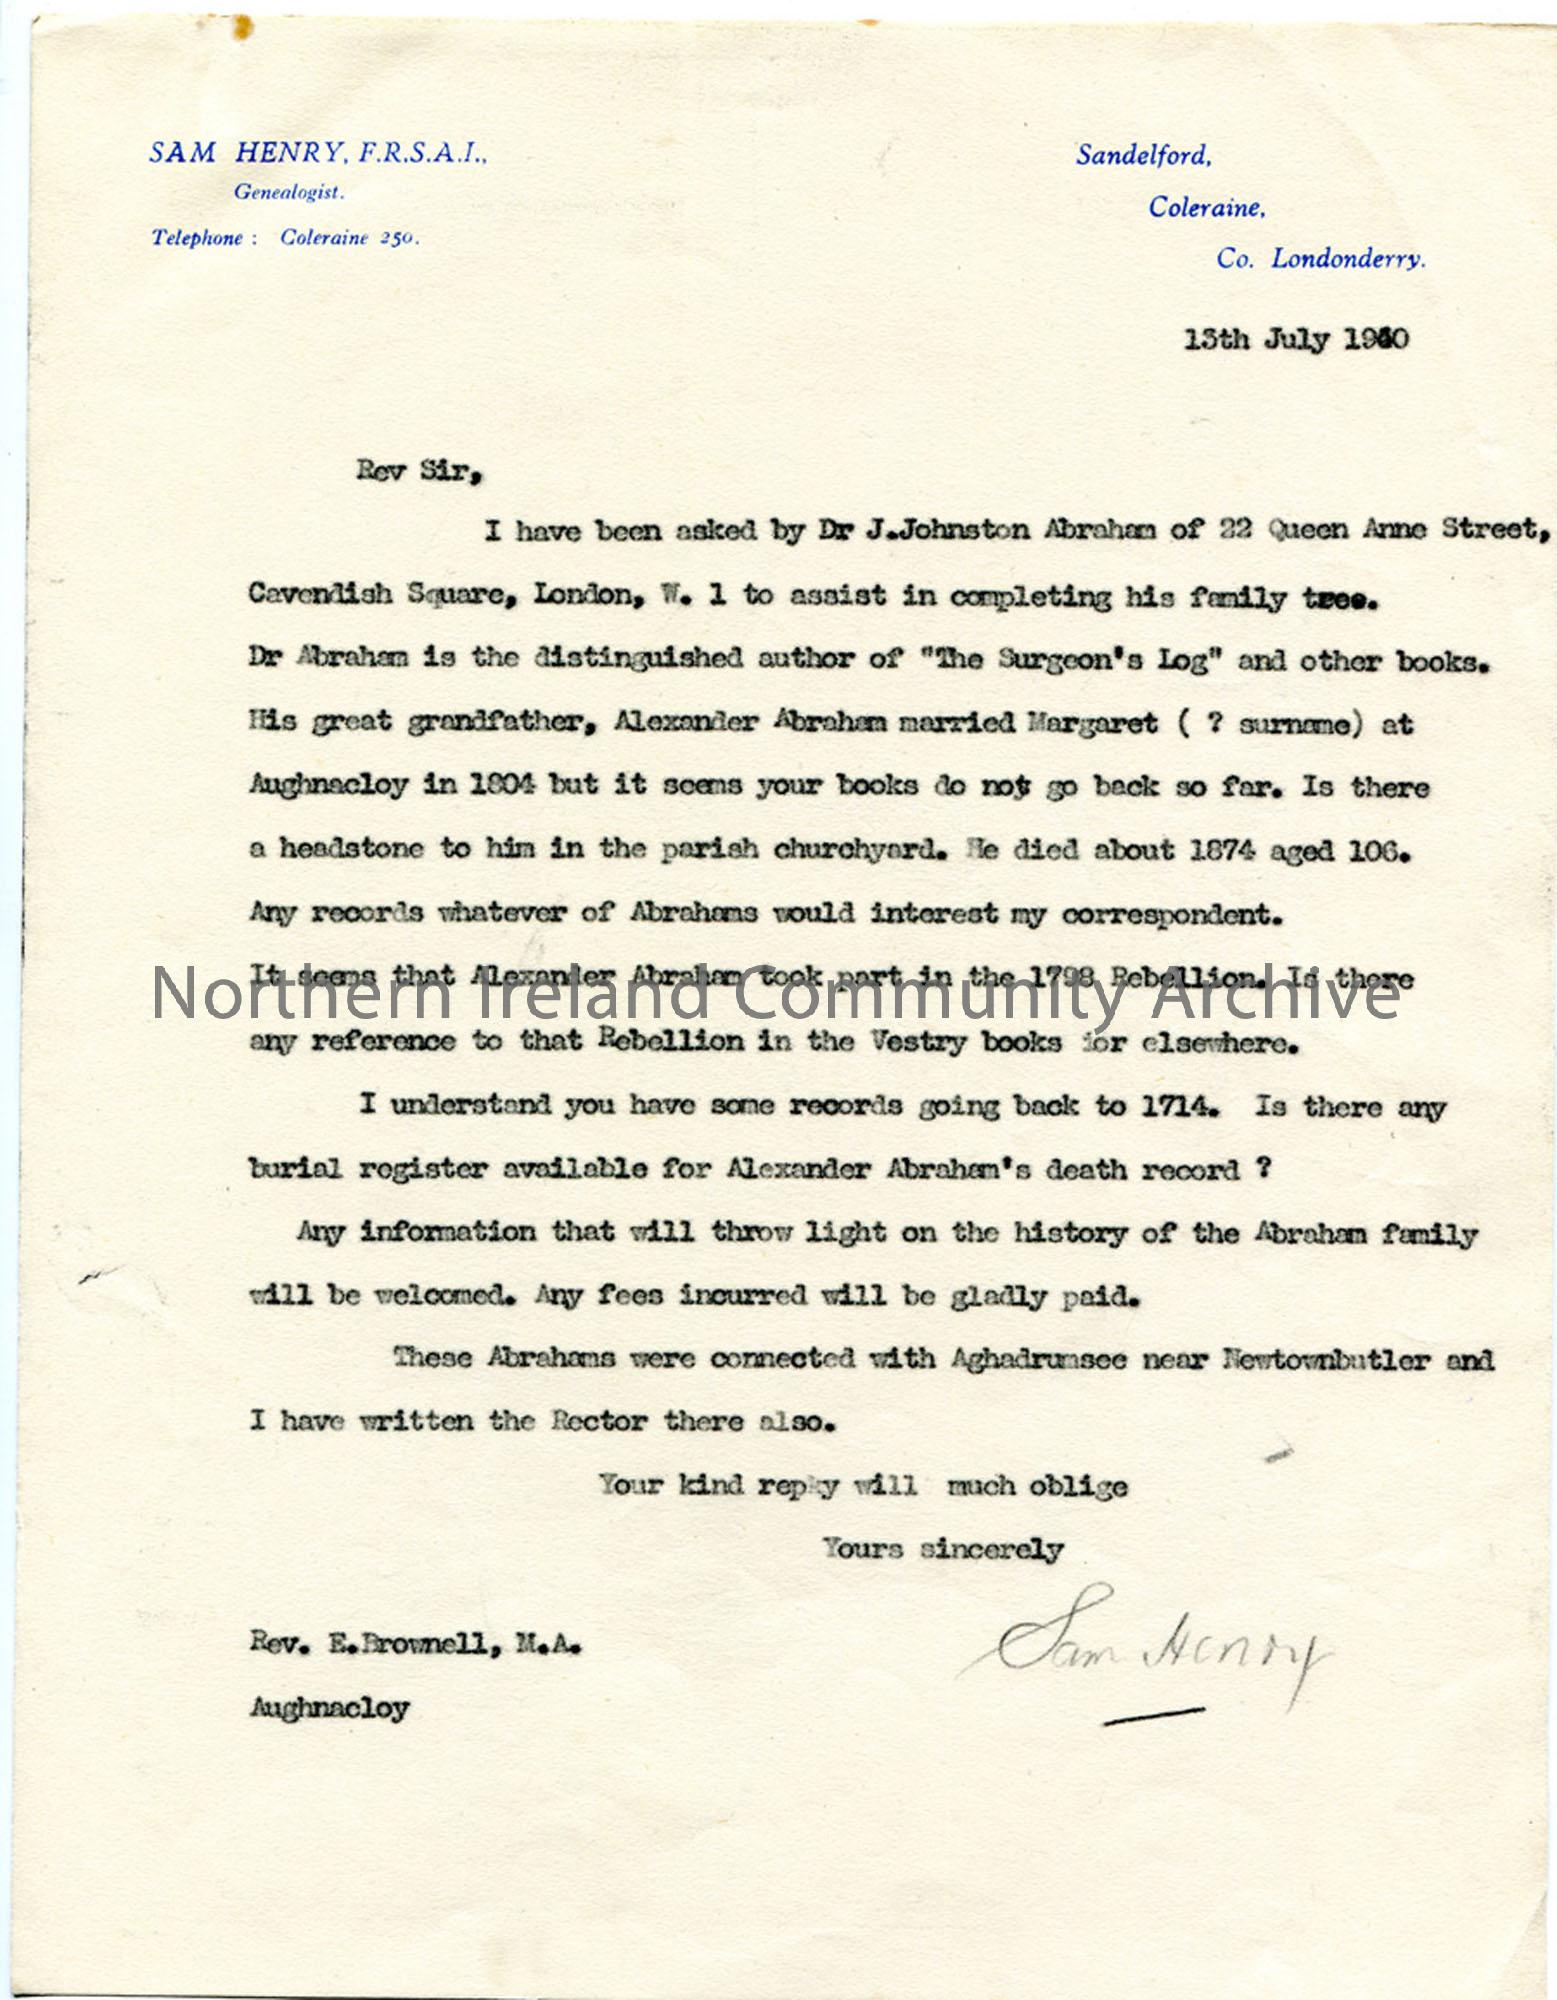 Letter to Rev. E. Brownell 13.7.1940